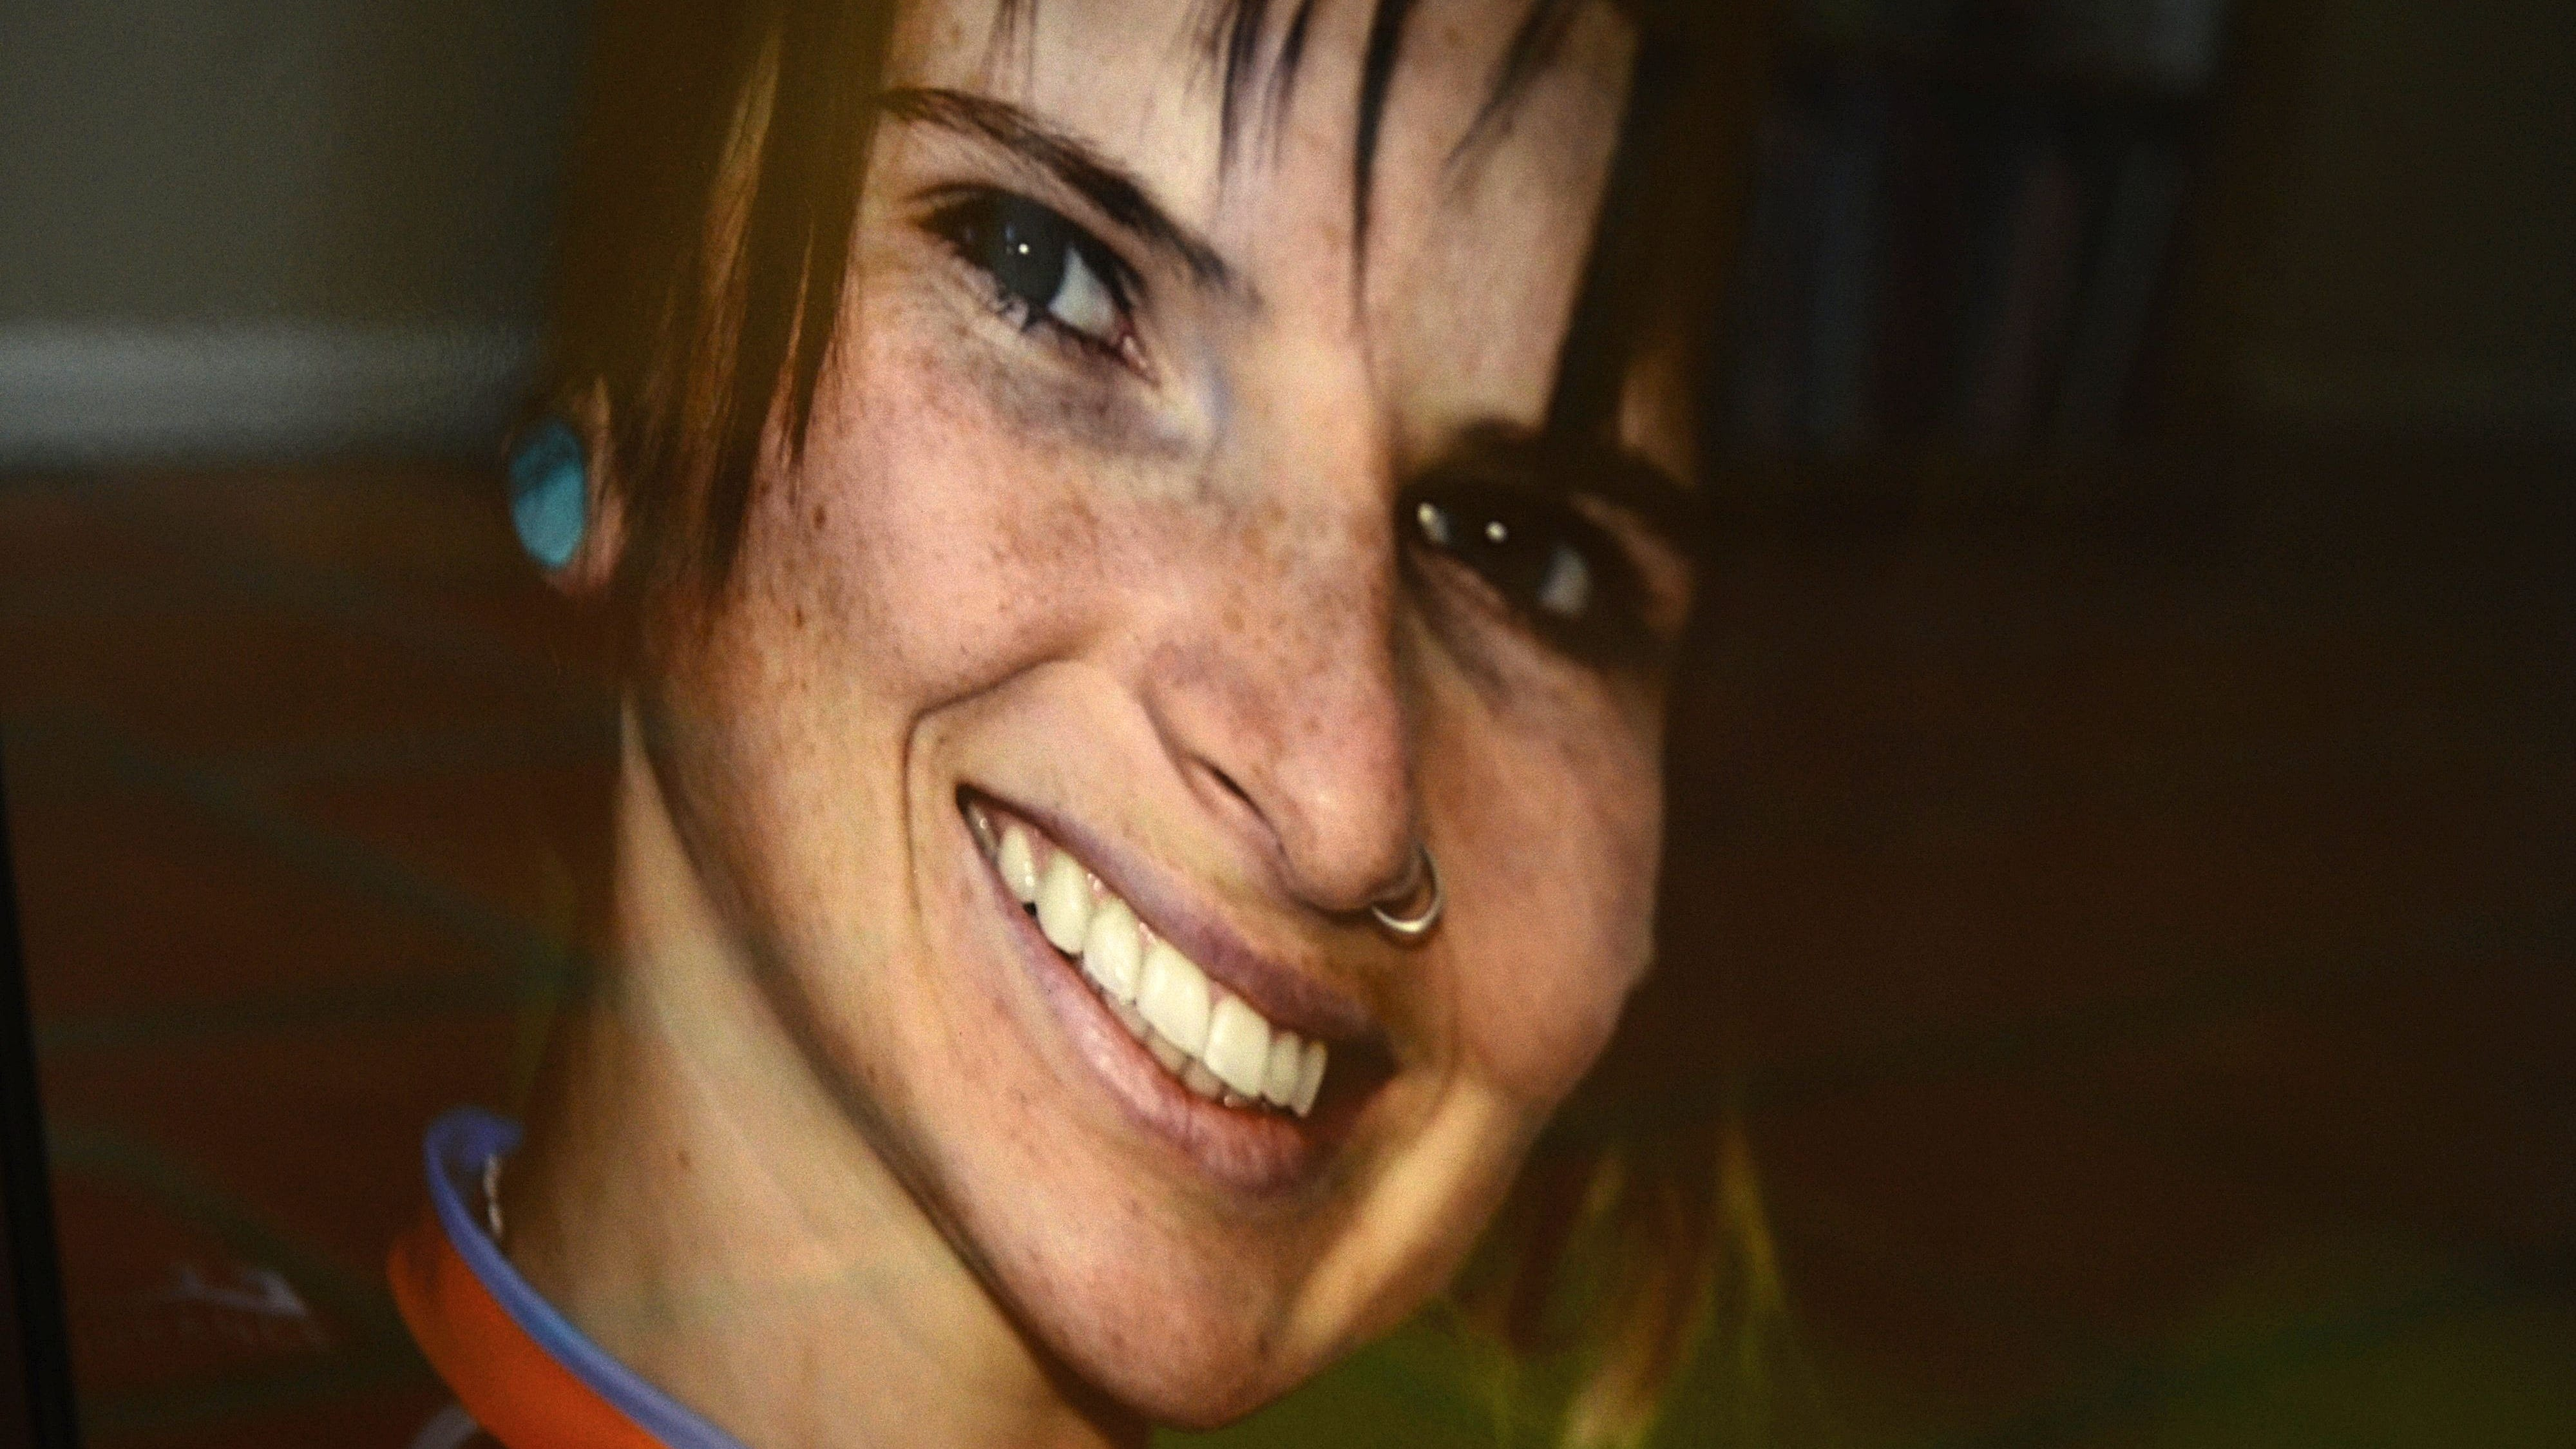 A photo of then 23-year-old Reno cyclist, Erica Greif. Greif was killed in a head-on crash in 2015, while driving to compete in the Redland Bicycle Classic race in California. She will be honored at a dedication on Sept. 22, 2018.